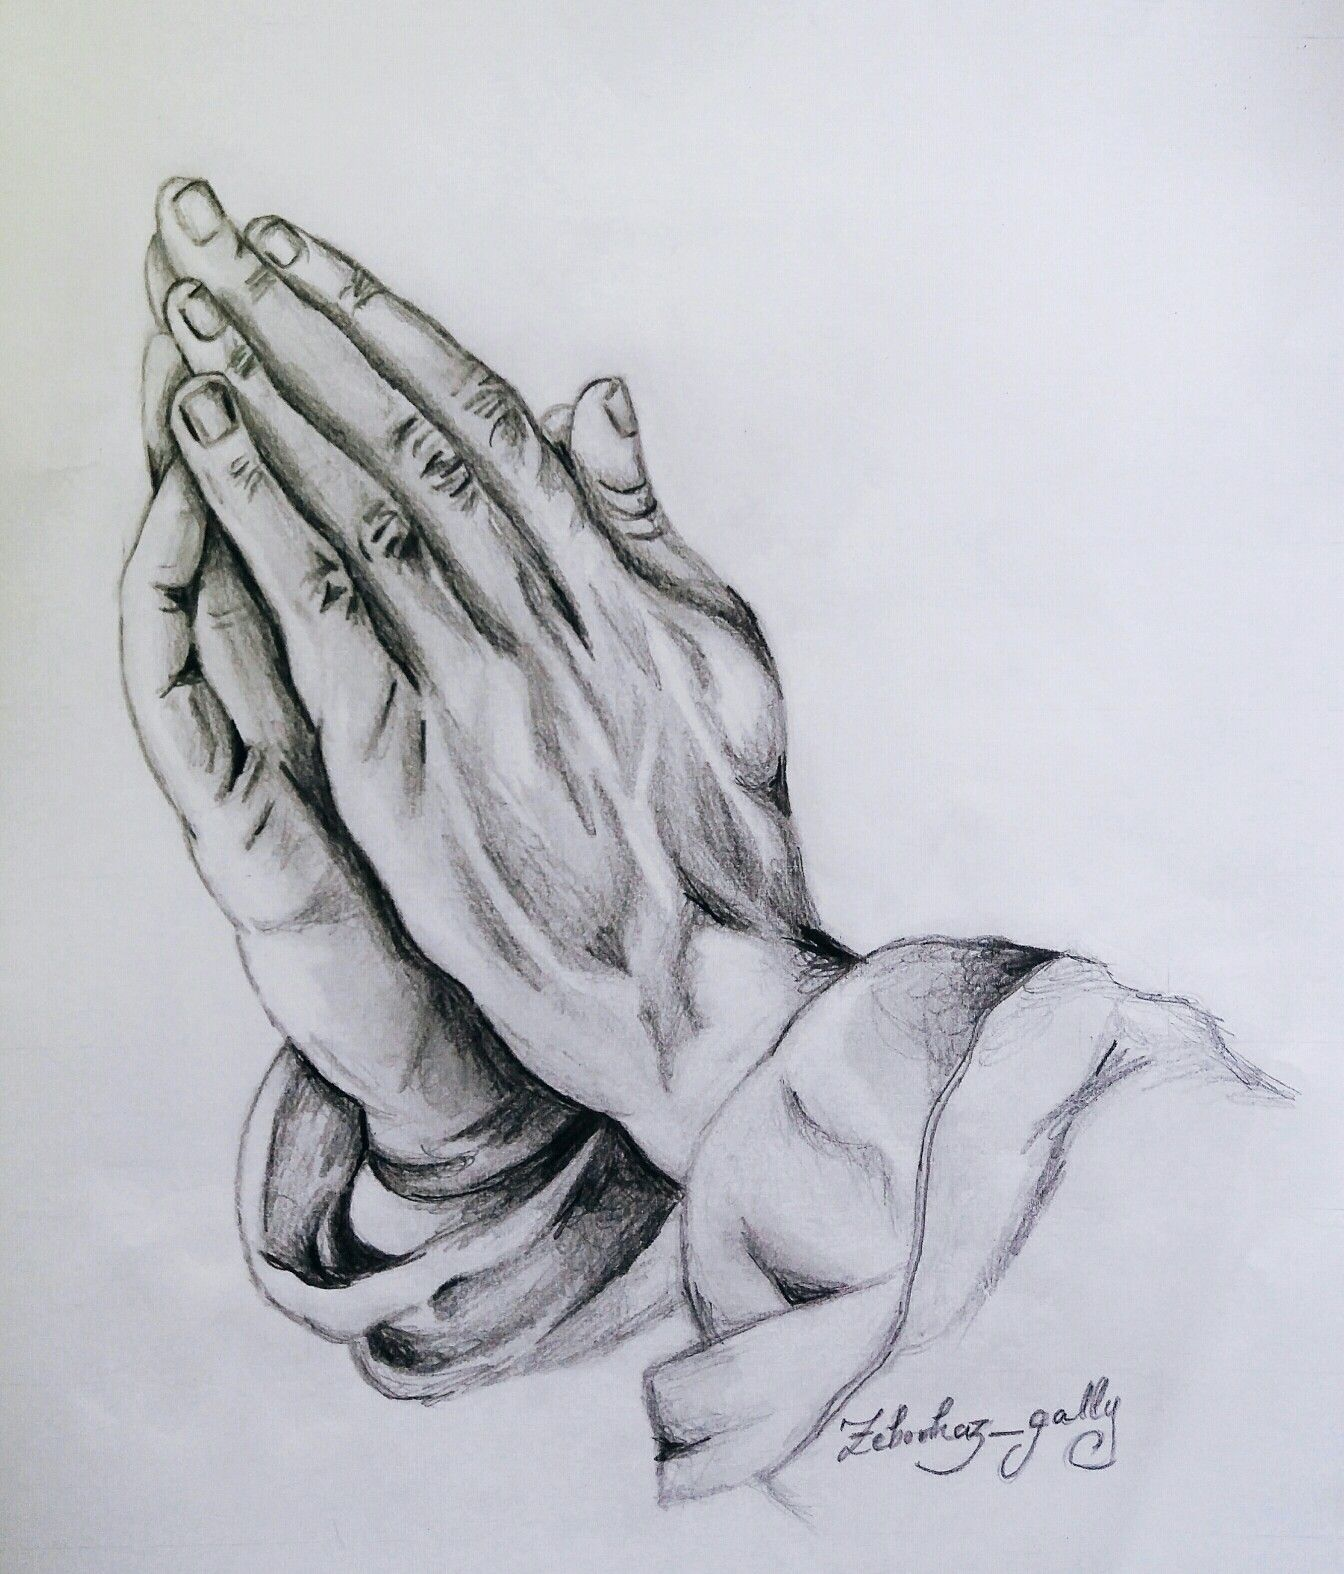 Praying hands god sketch art artwork drawing pencil art zeborhaz gallery